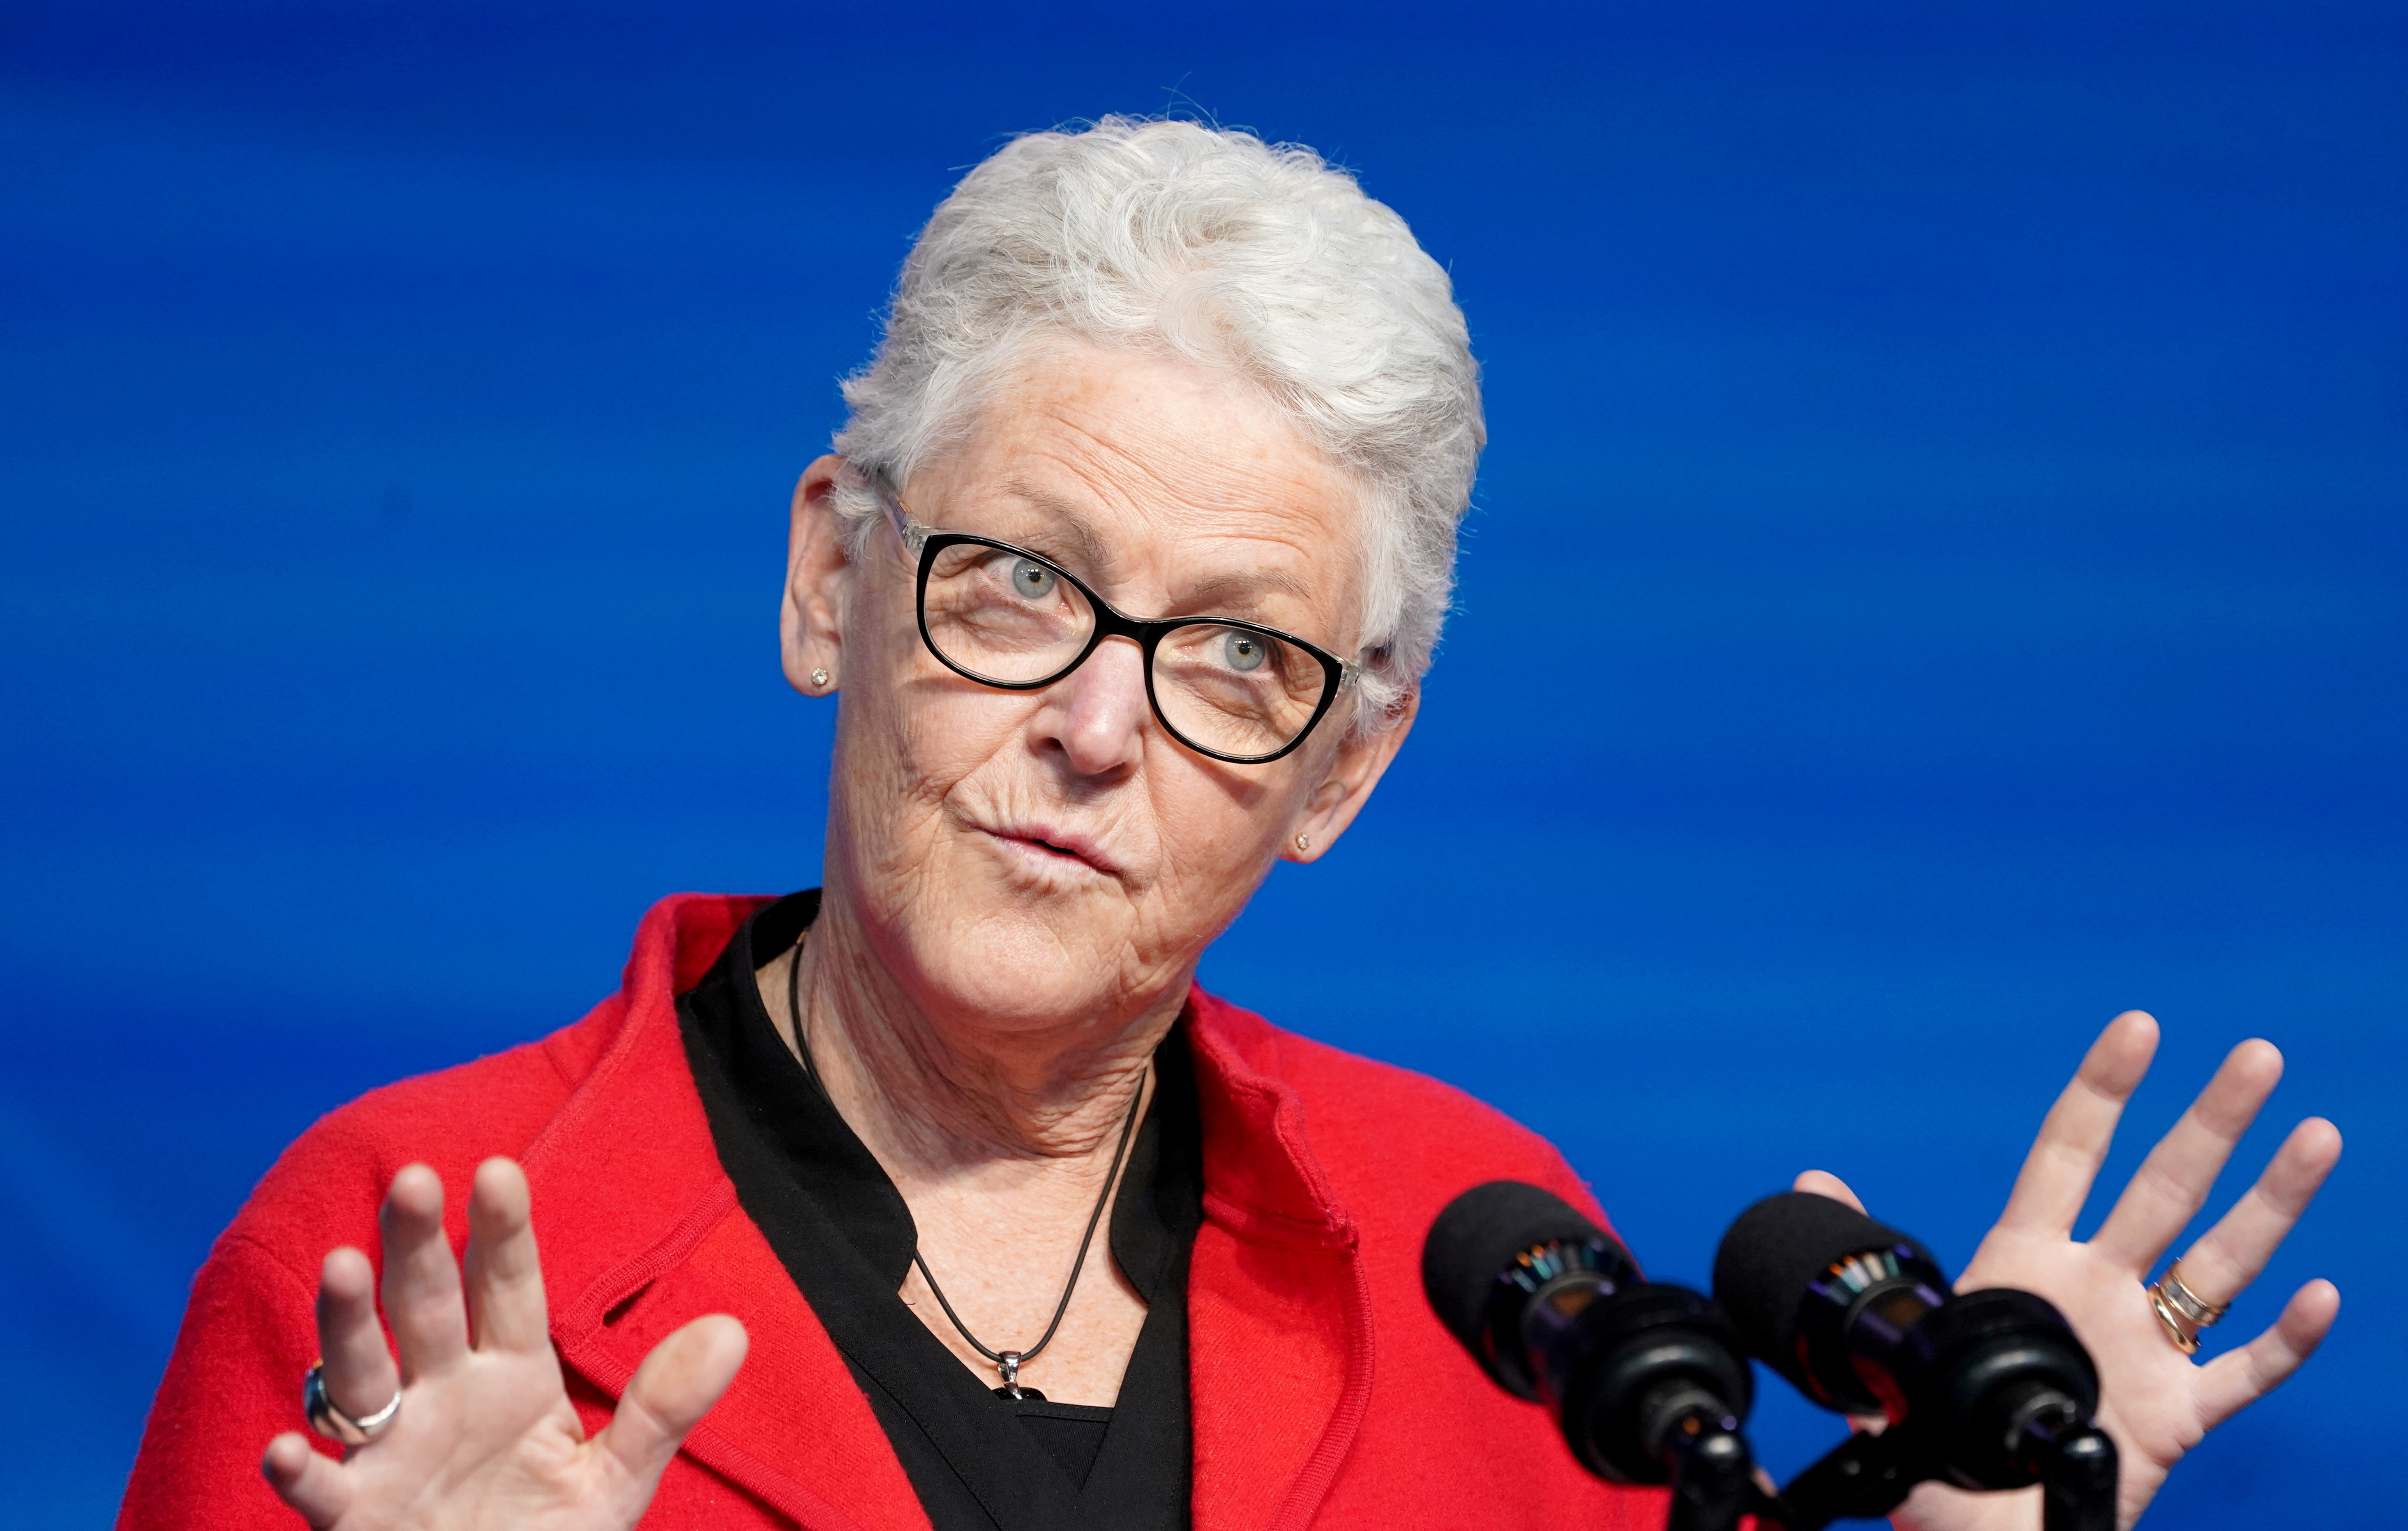 Former EPA chief Gina McCarthy, U.S. President-elect Joe Biden's nominee for National Climate Adviser, speaks after Biden announced her nomination among another round of nominees and appointees for his administration in Wilmington, Delaware, U.S., December 19, 2020. REUTERS/Kevin Lamarque/File Photo